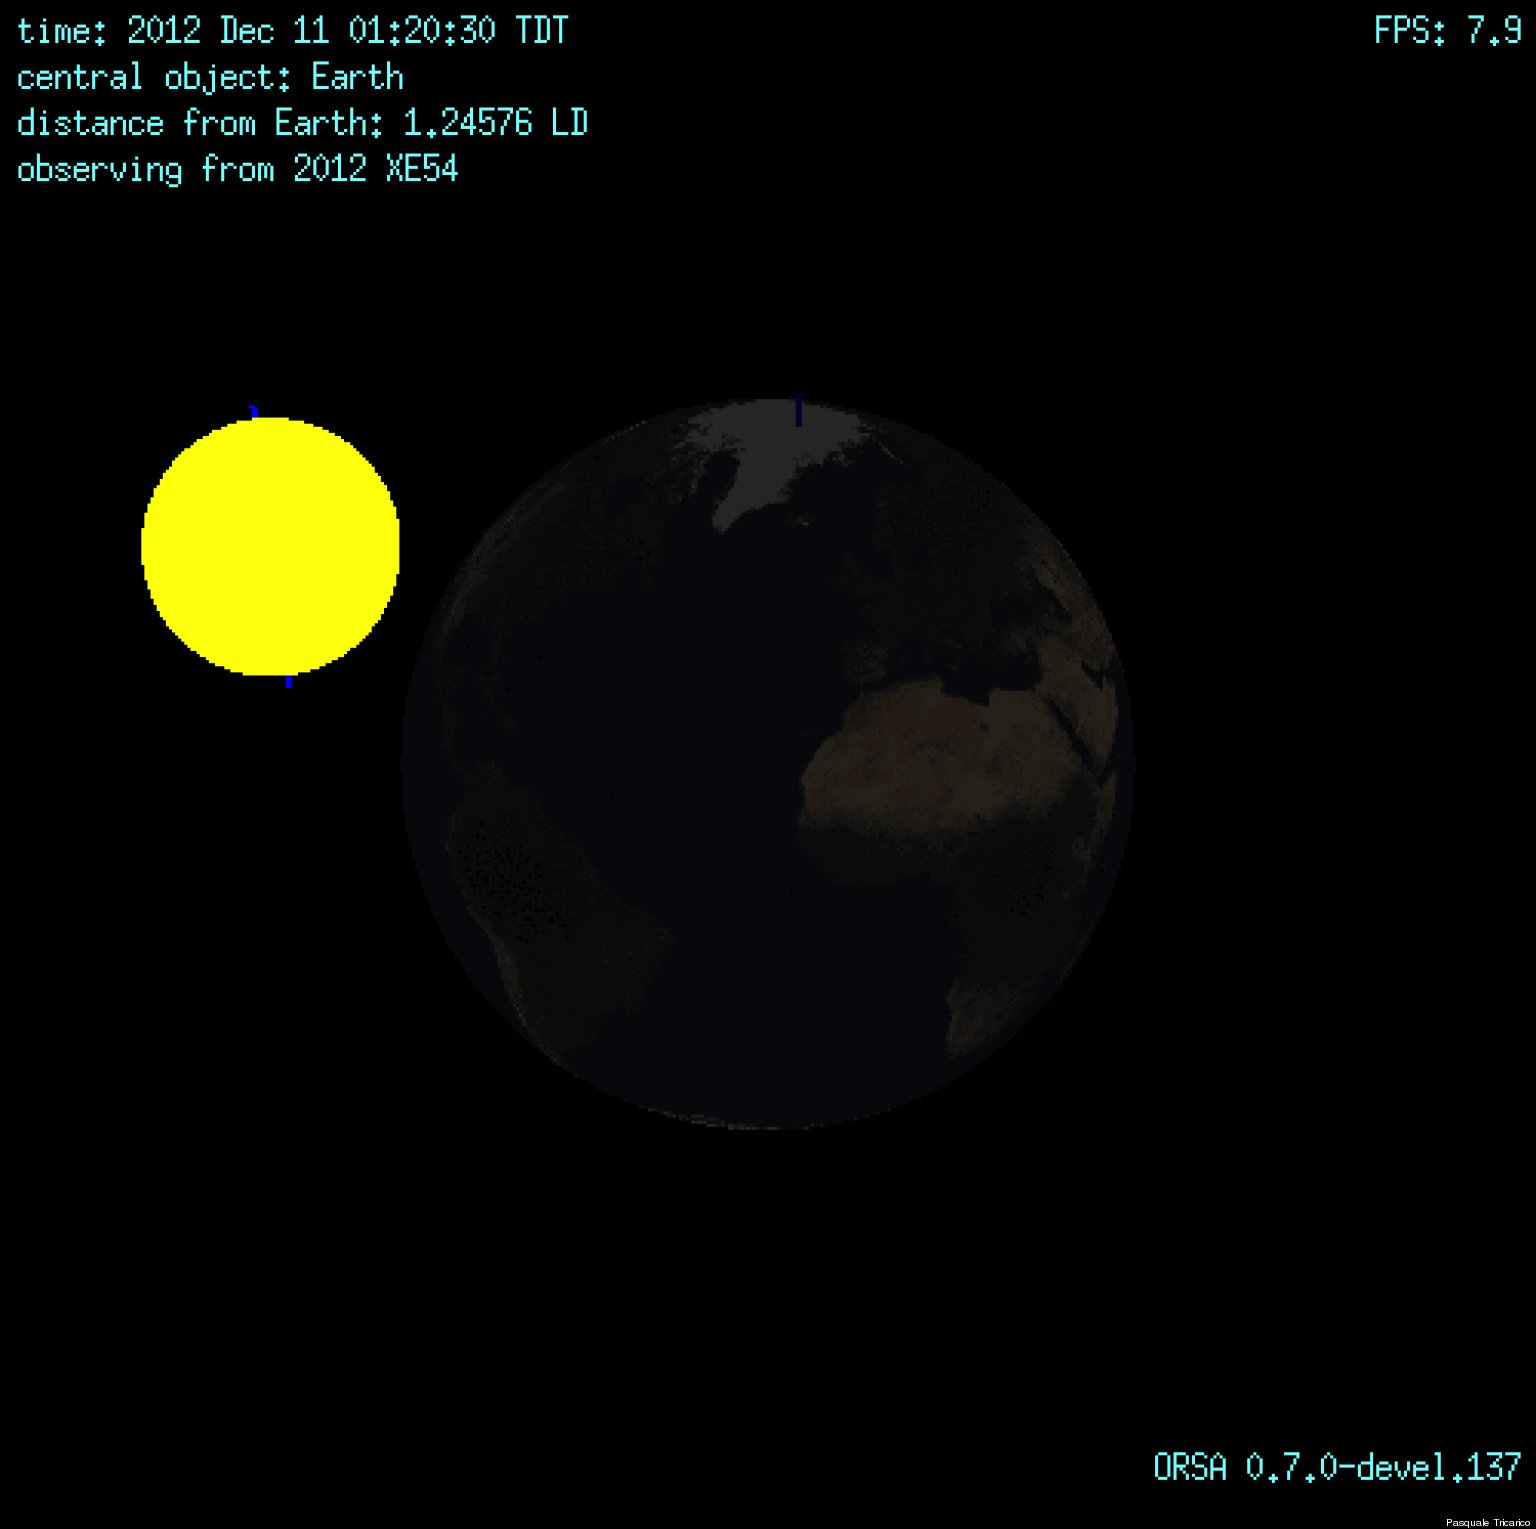 shooting asteroids from earth view - photo #33